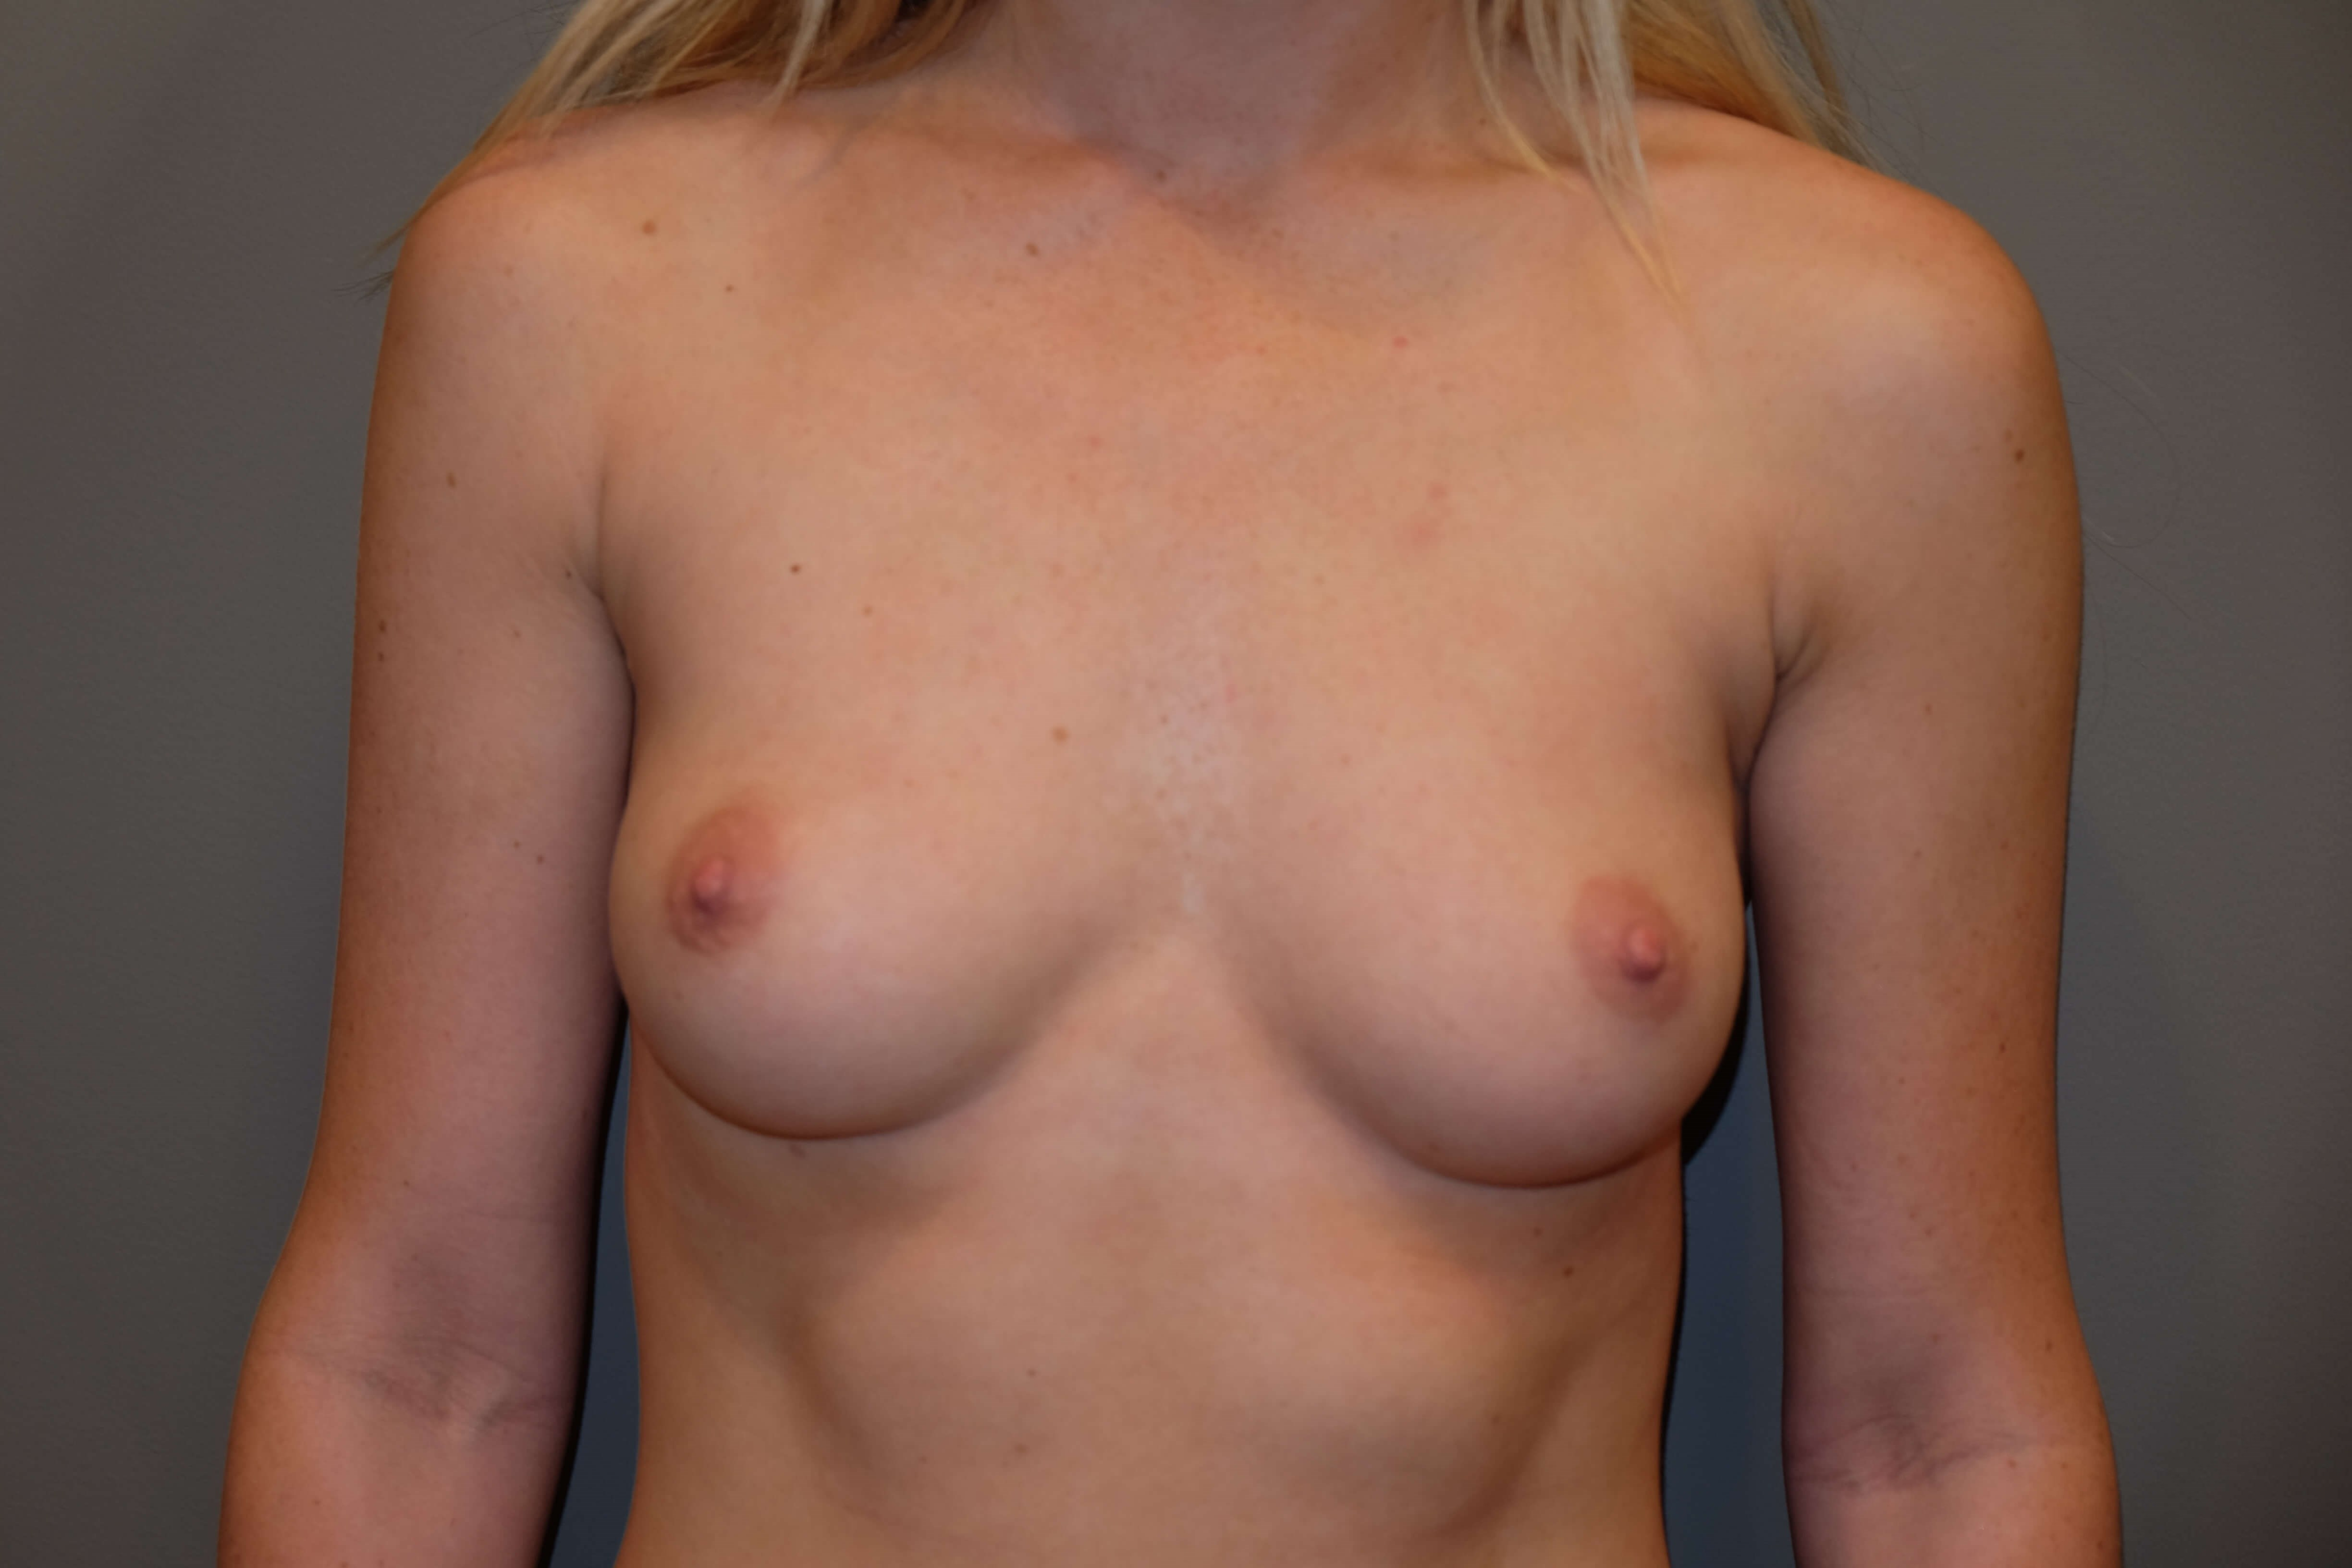 Breast Augmentation Before 34 full B cup